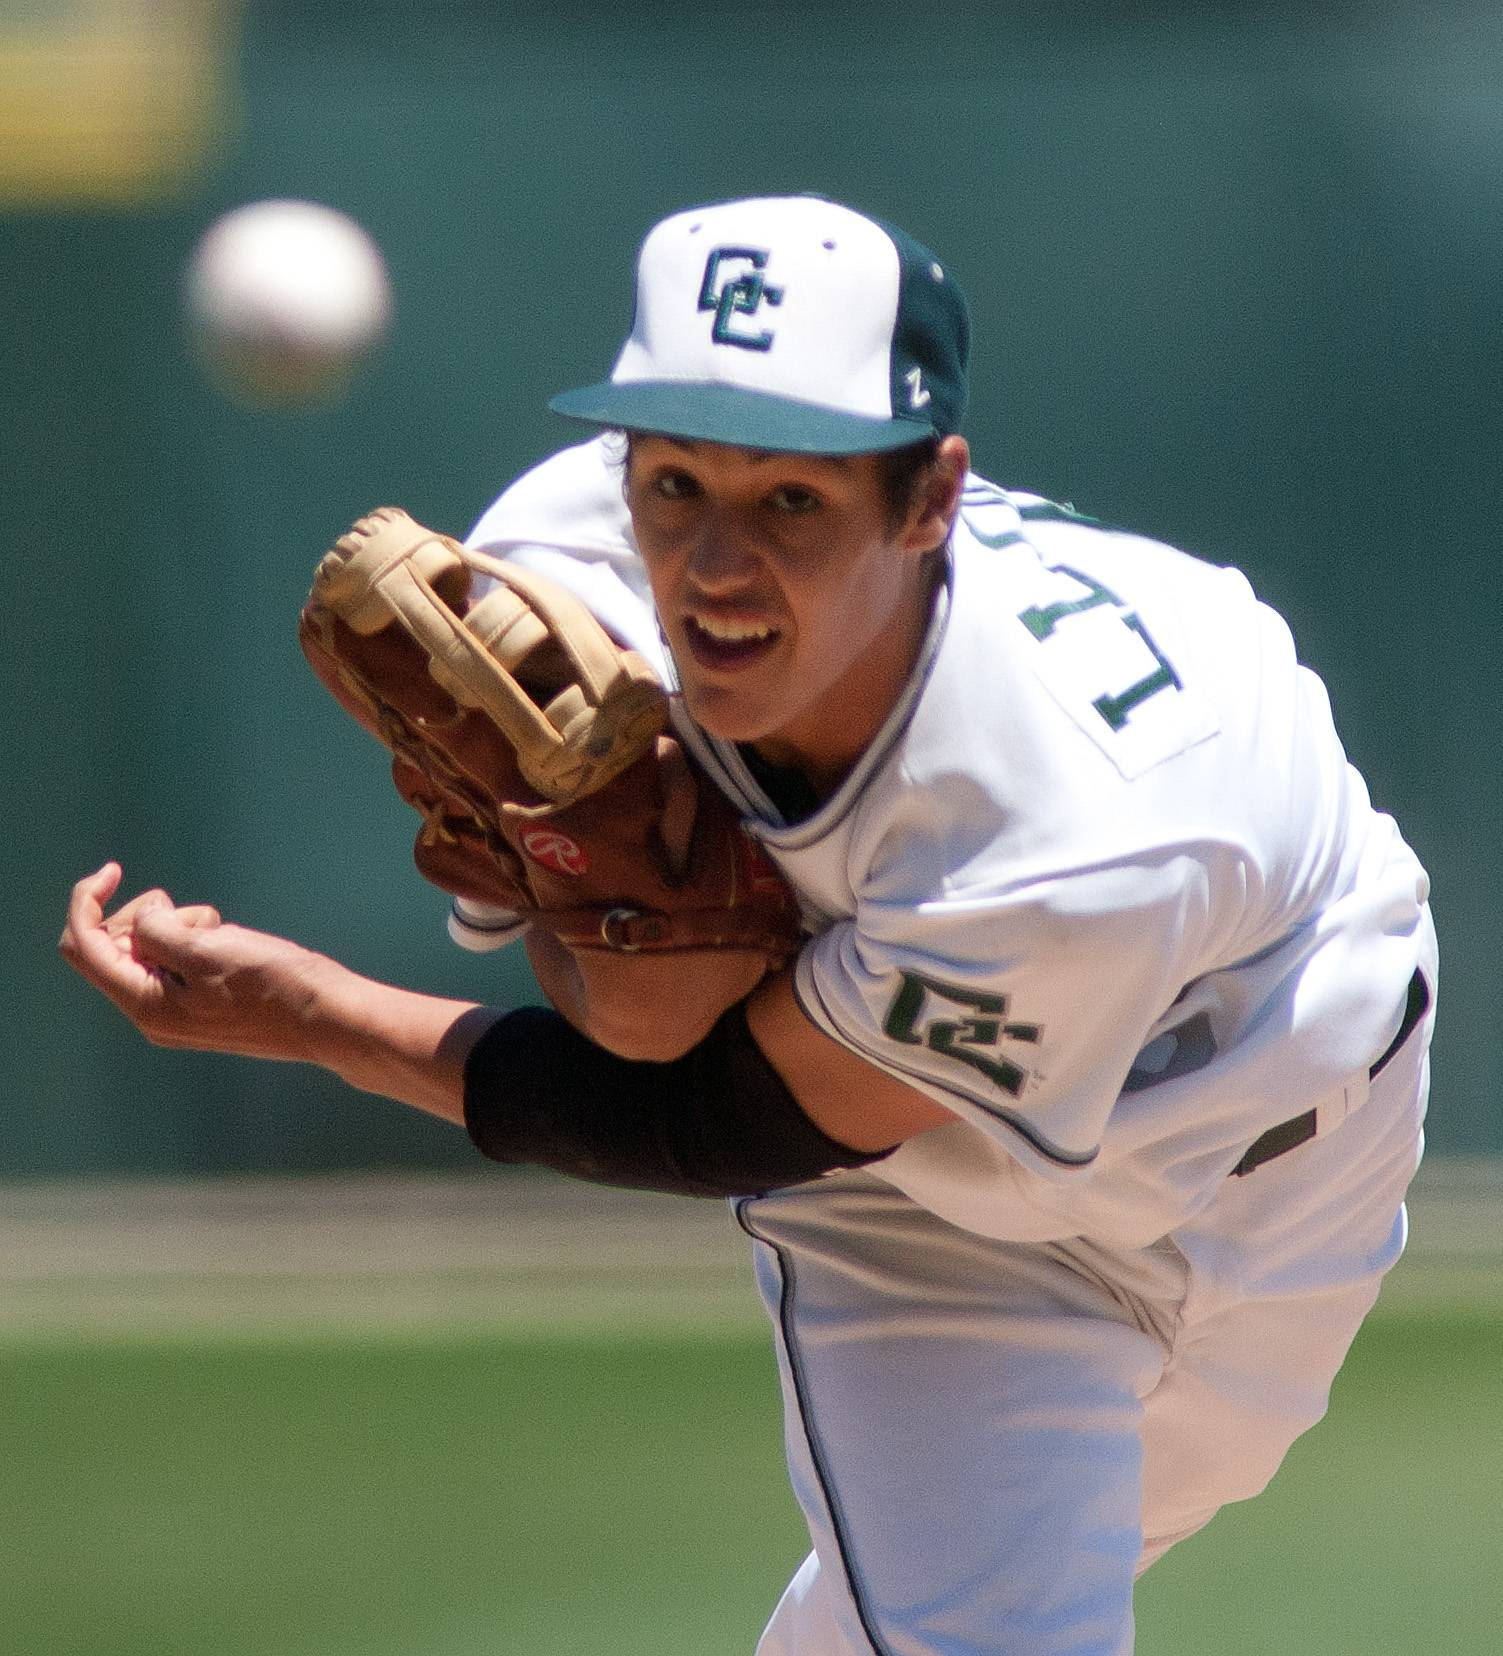 Grayslake Central pitcher David Llorens delivers against Springfield Sacred Heart-Griffin during the Class 3A state baseball semifinals at Silver Cross Field in Joliet.